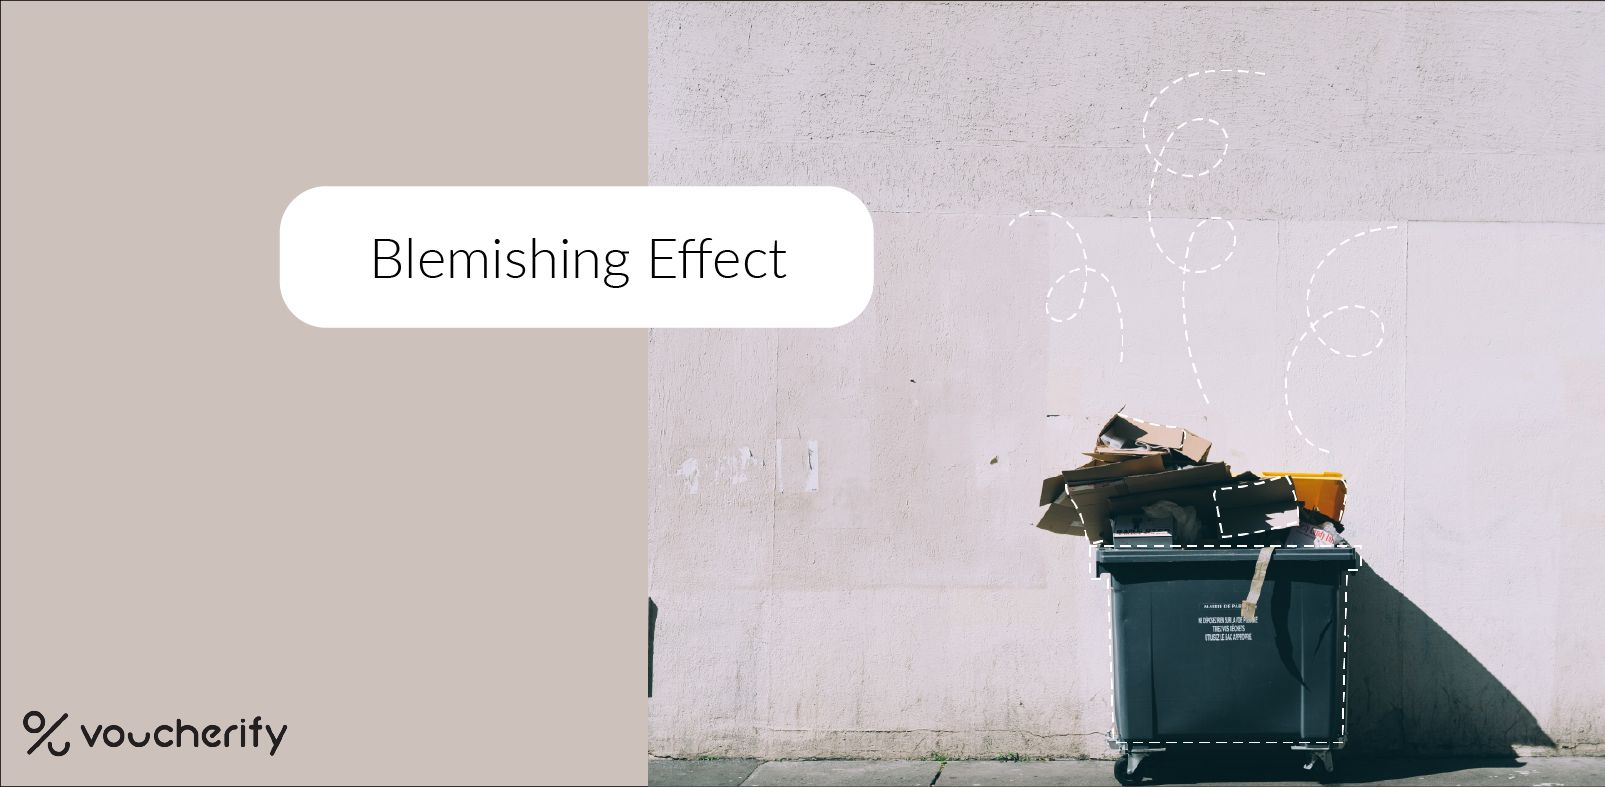 The Blemishing Effect – a secret tactic to boost your sales